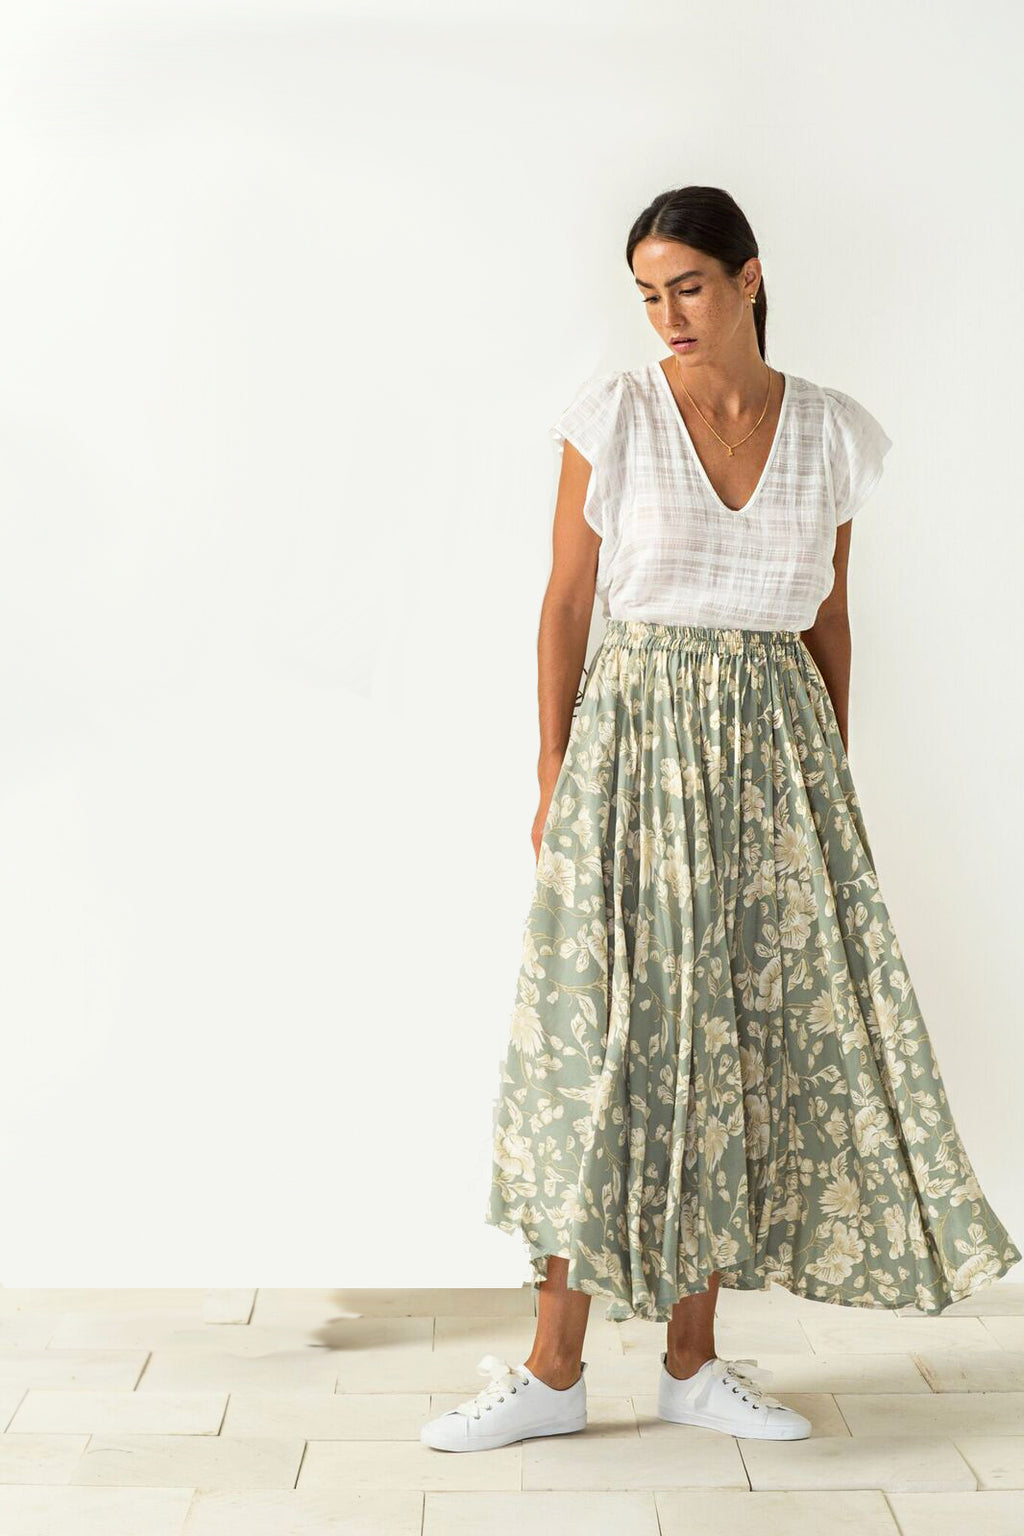 BIRD AND KITE - Alela Skirt online at PAYA boutique